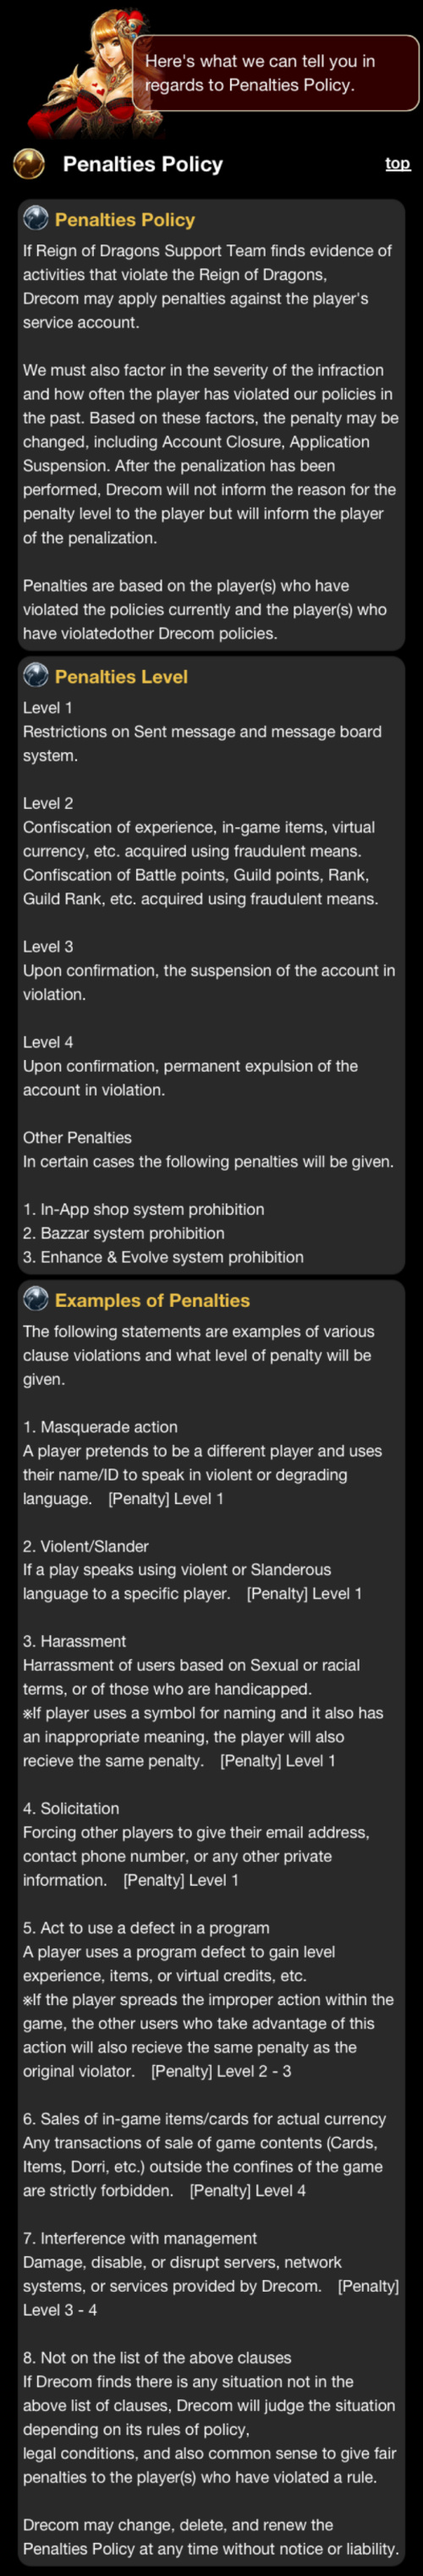 Penalties Policy